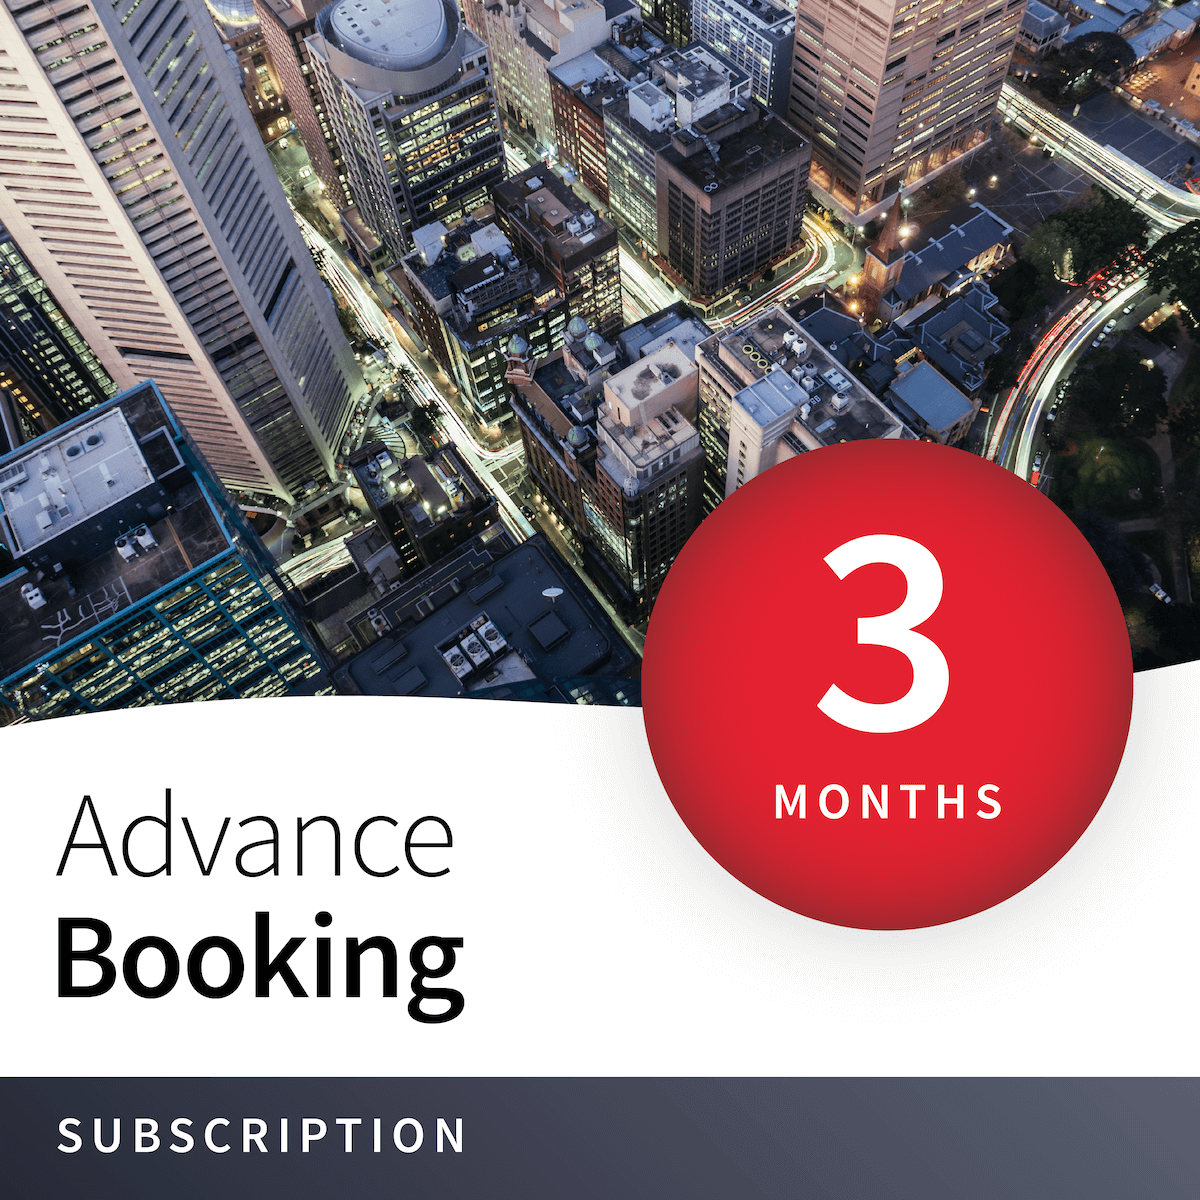 Priority Advance Booking - 3 Months 1